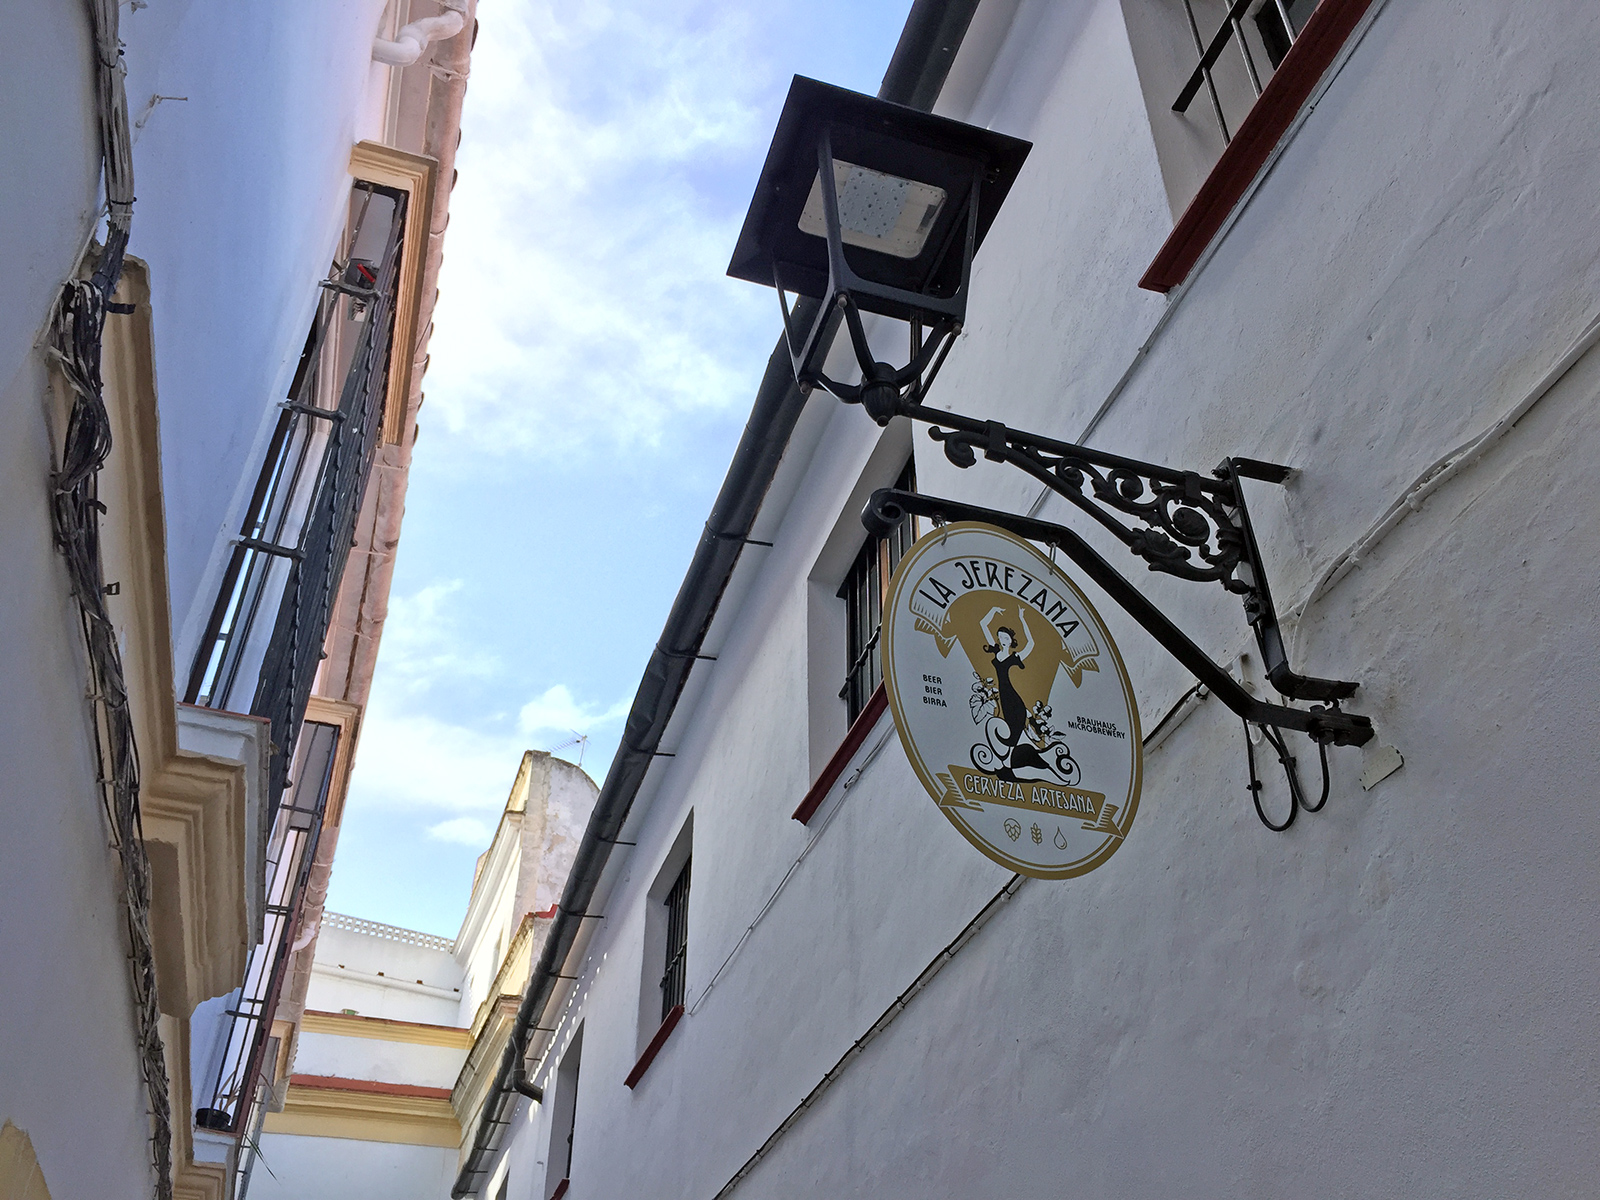 La Jerezana Brewery in Jerez de la Frontera, Spain by Jets Like Taxis